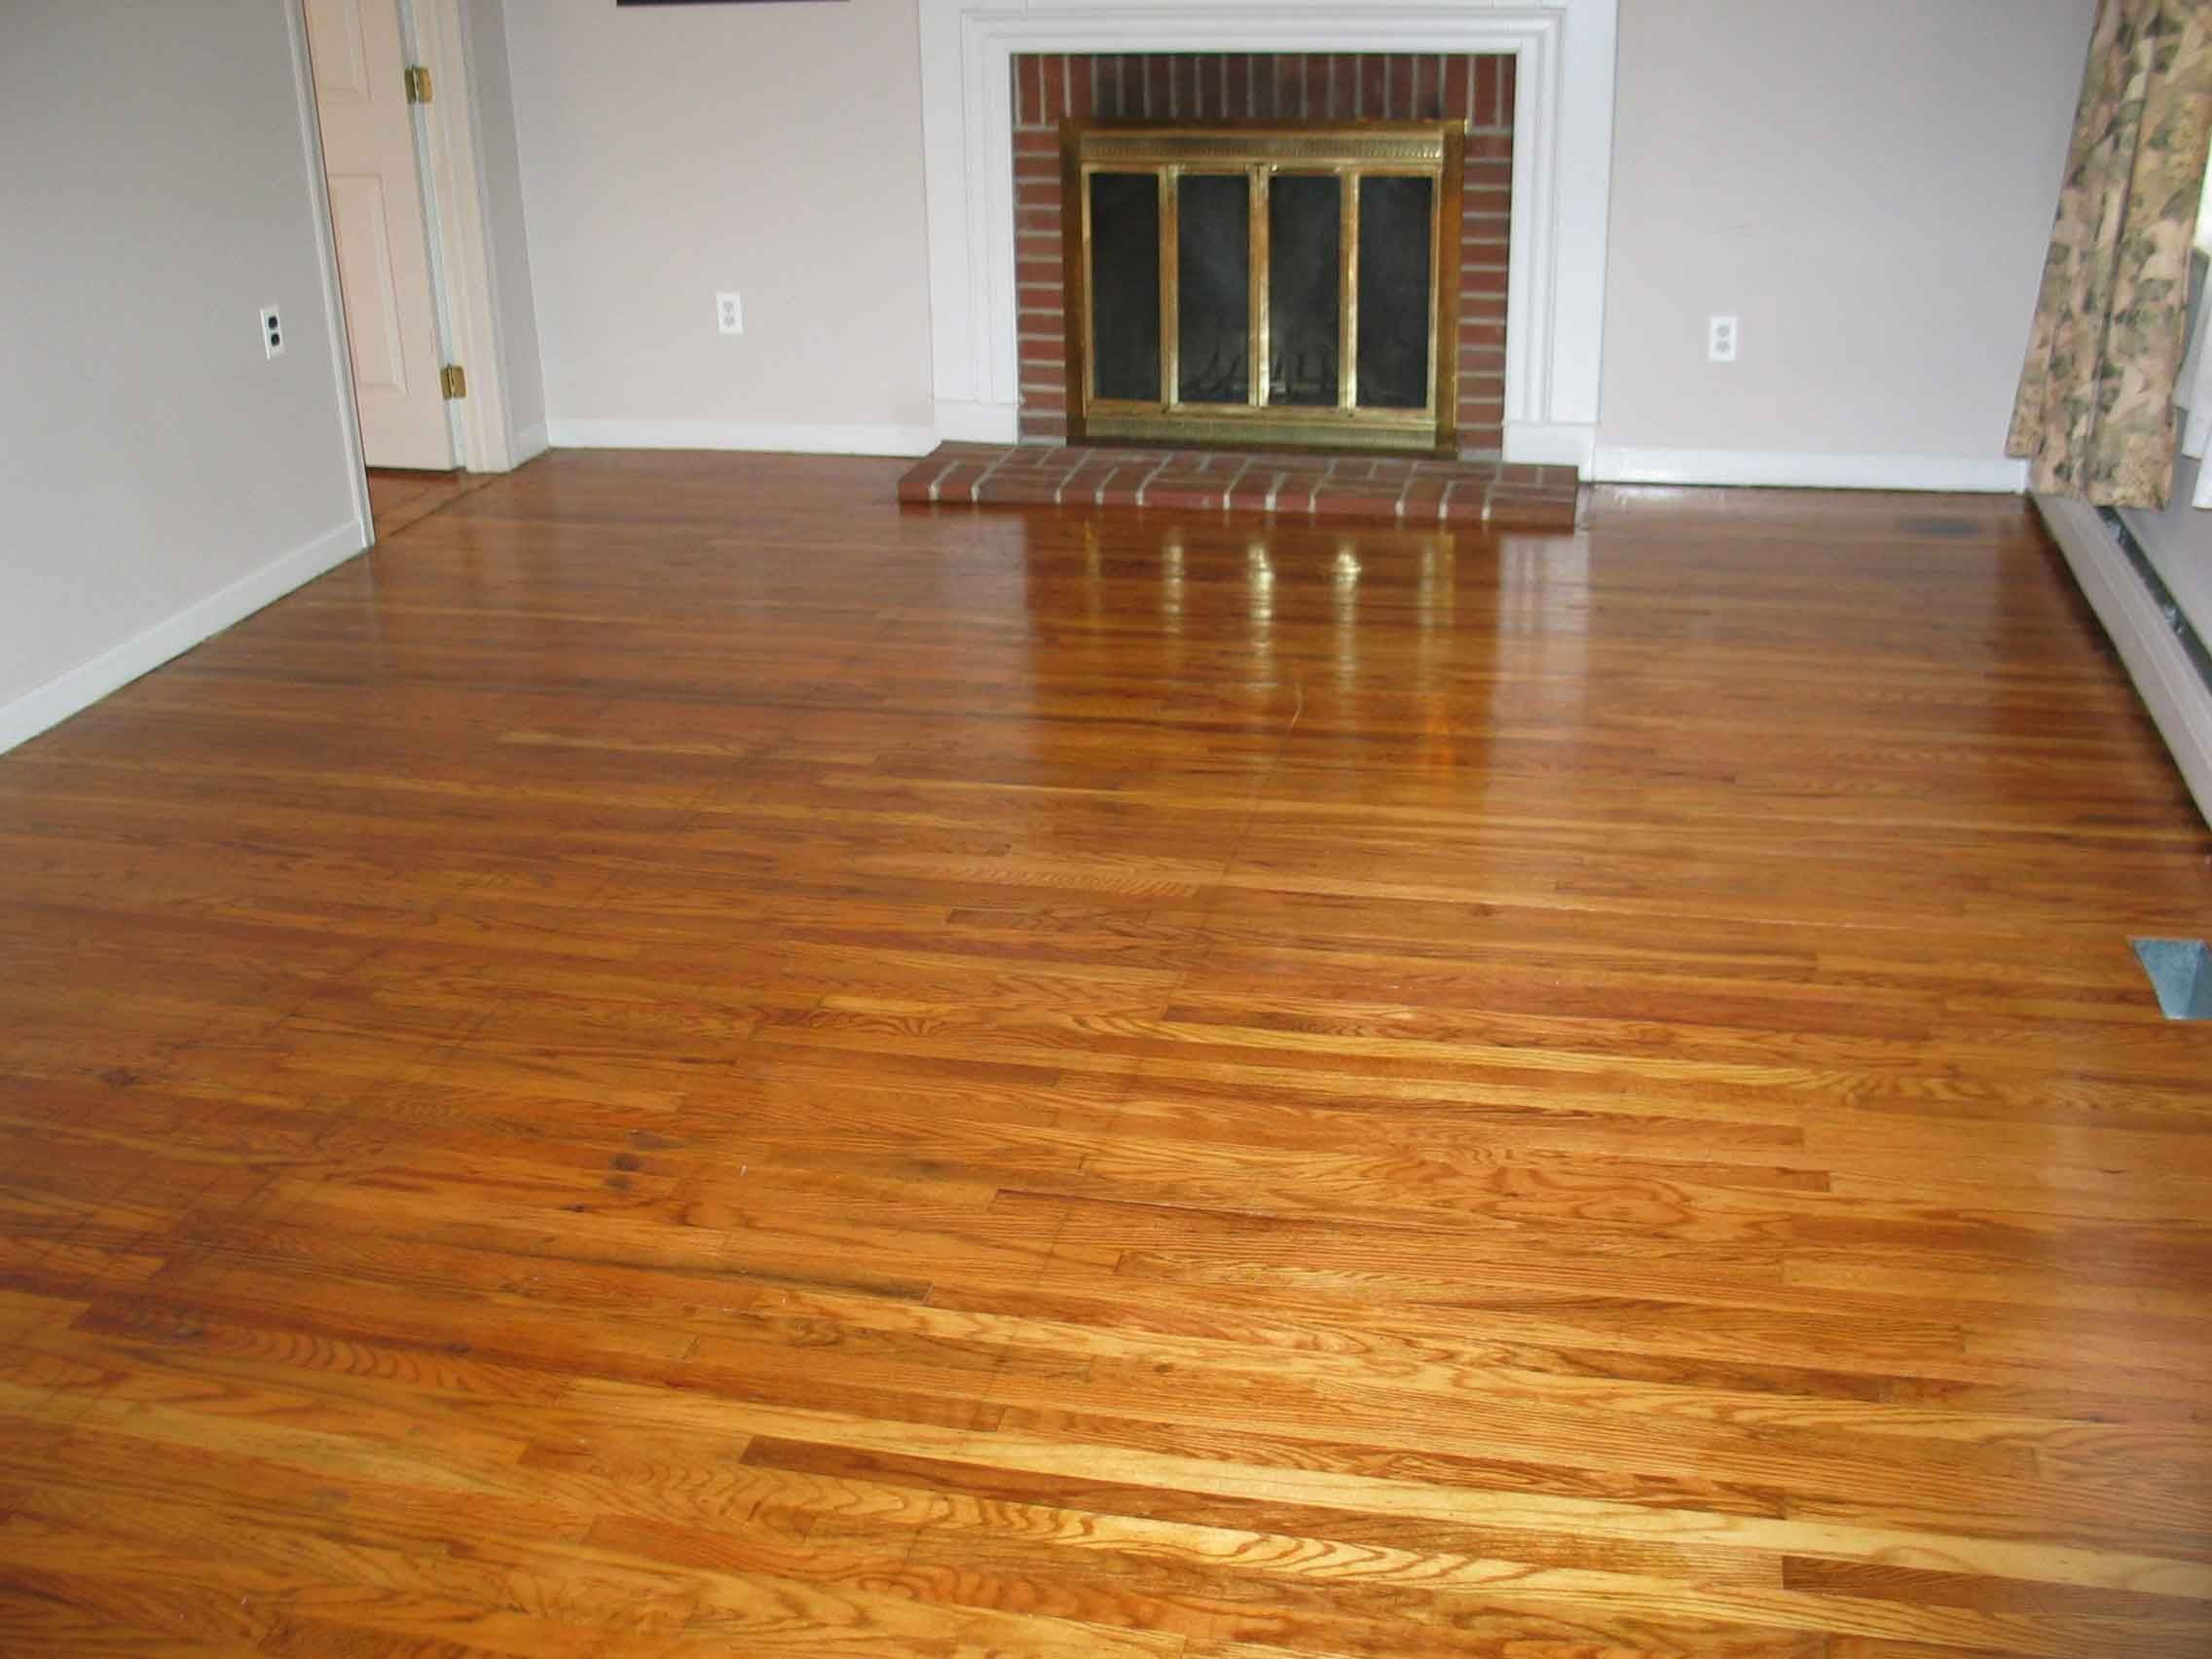 Mr sandless wood floor refinishing seriously going to have to sandless wood floor refinishing seriously going to have to call them now solutioingenieria Images